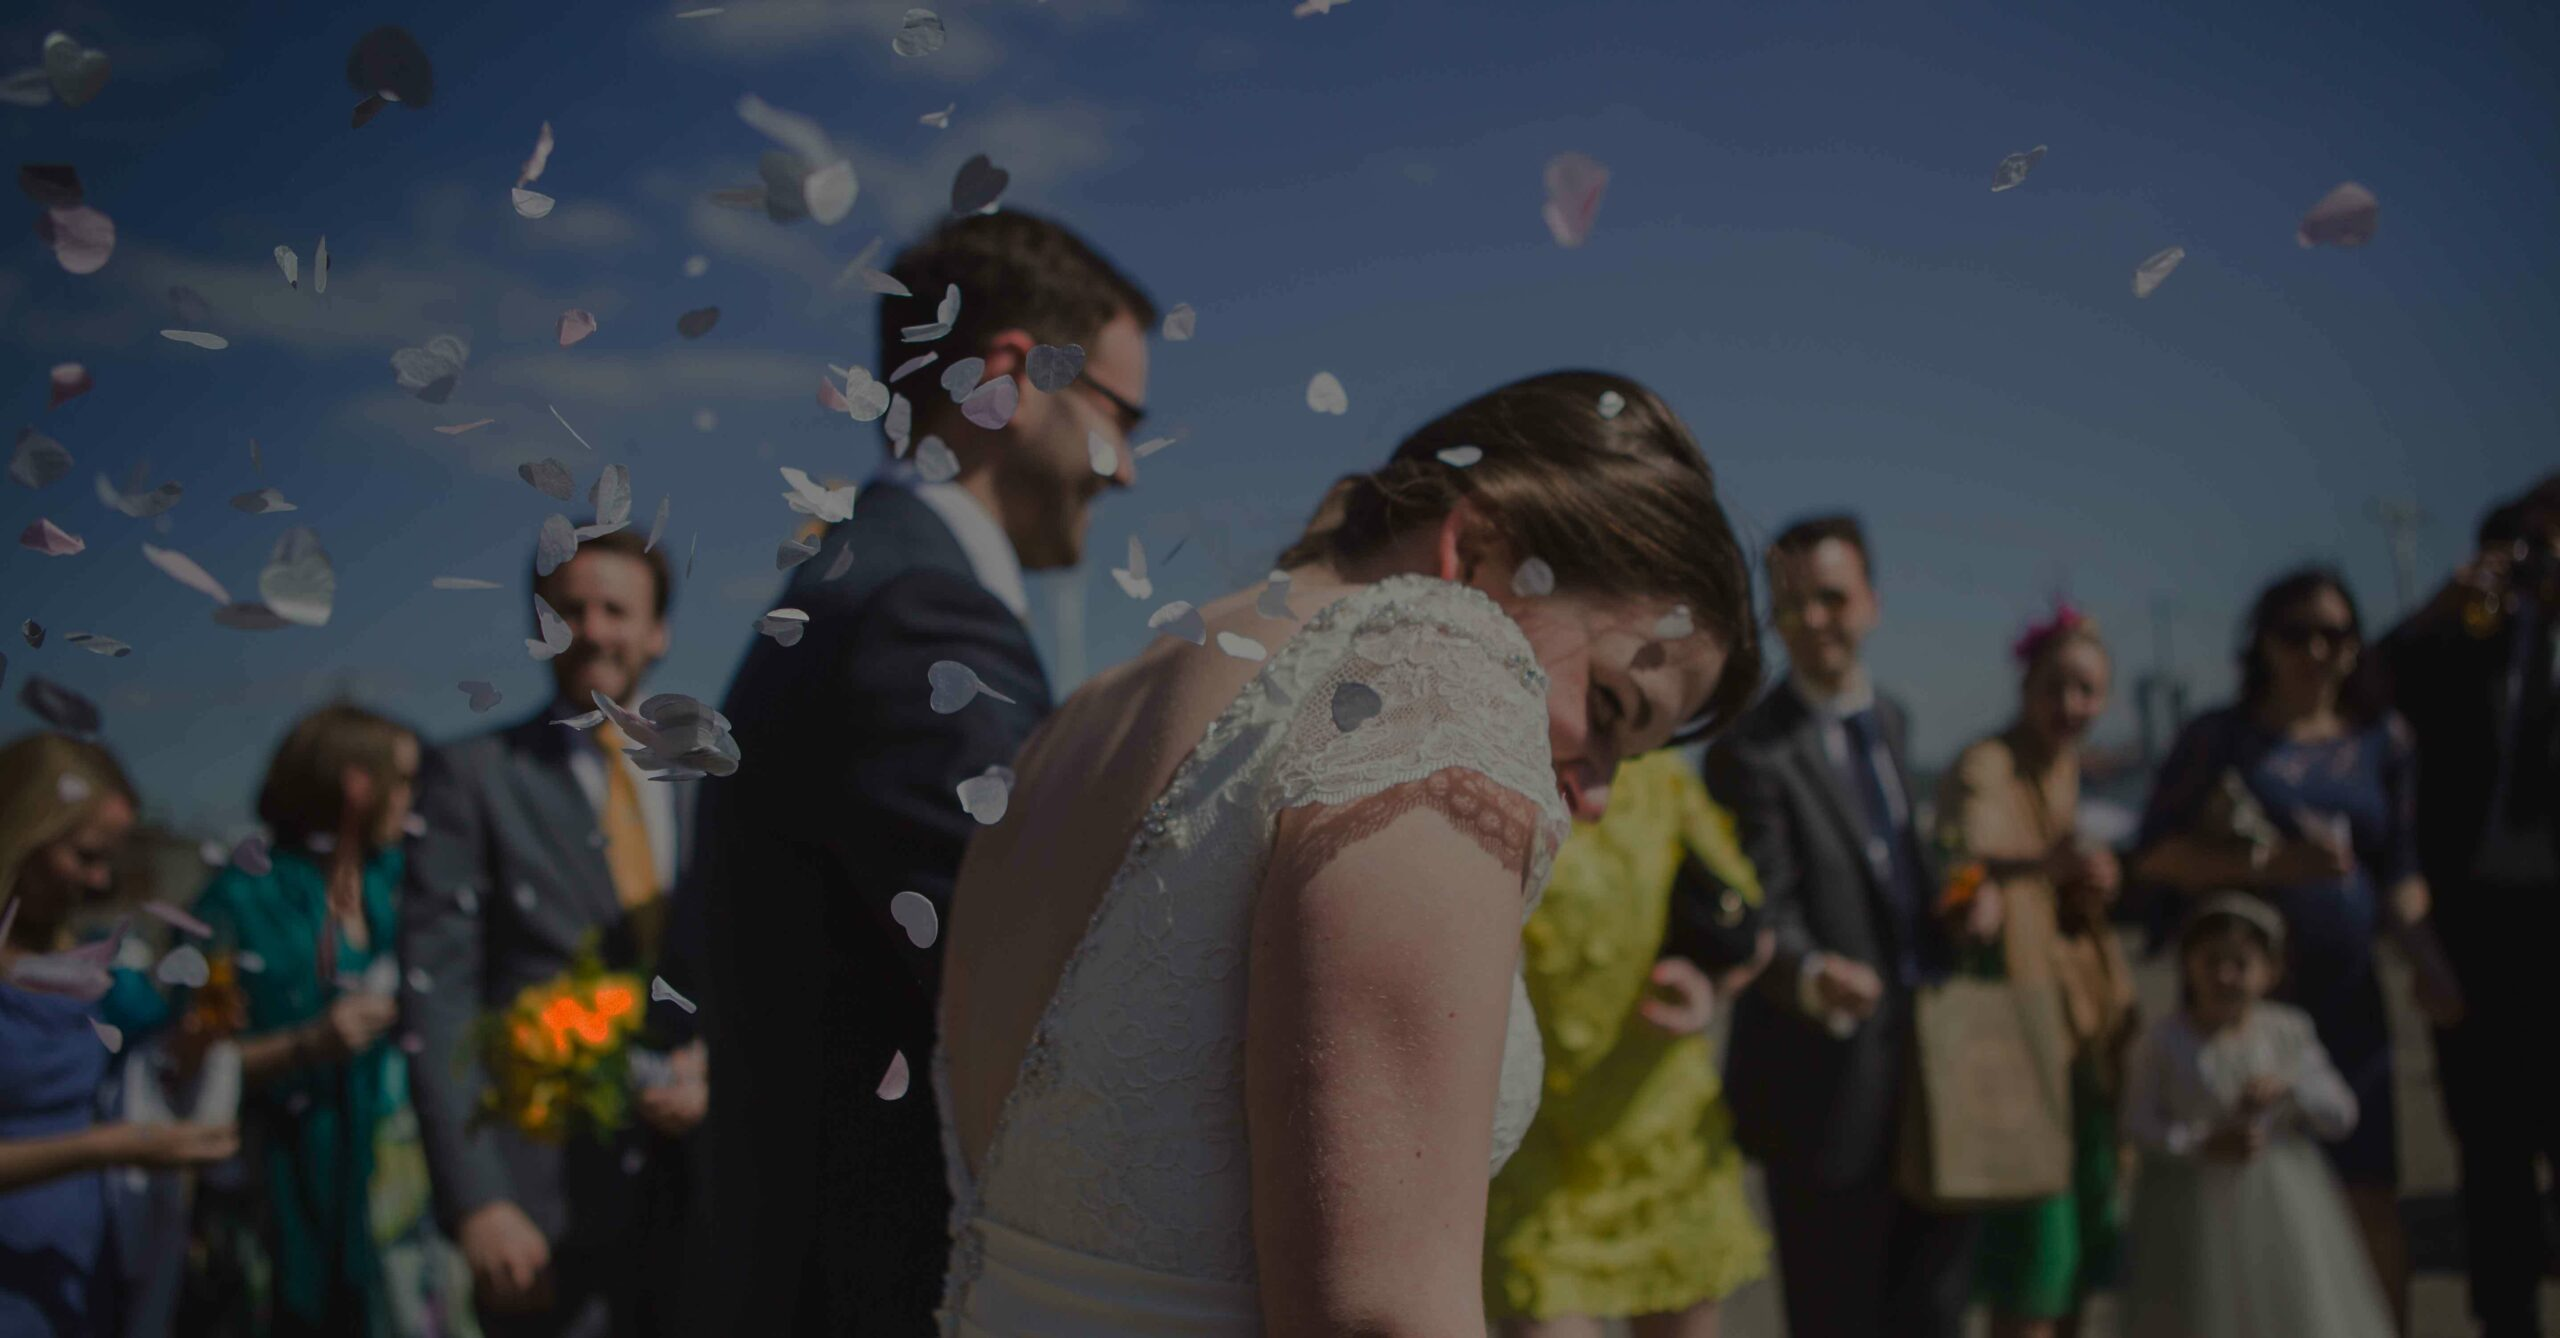 Wedding couple out of focus walking through confetti